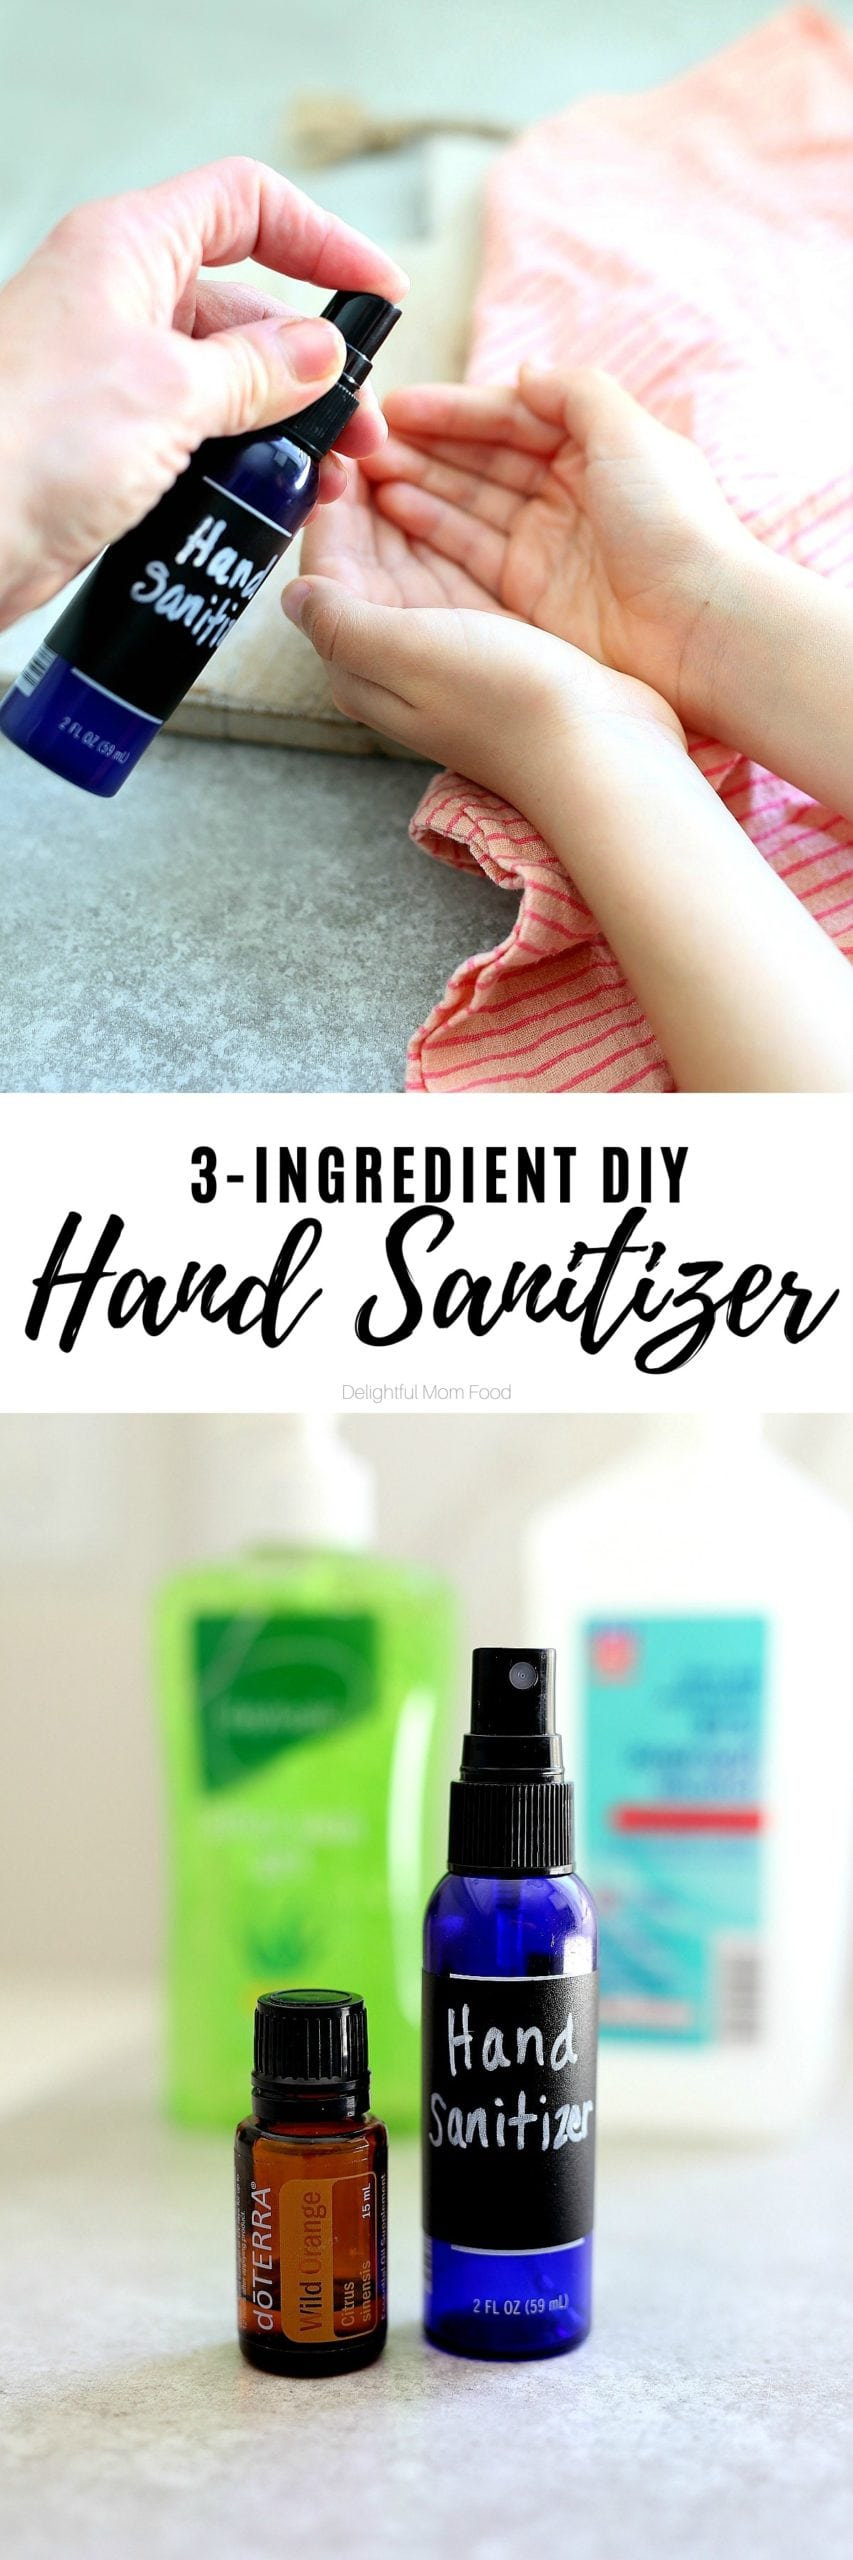 Easily make hand sanitizer at home with 3 simple ingredients! This homemade hand sanitizer recipe uses alcohol, aloe, and essential oils with the perfect ratio to sanitize without extra chemicals and fussy ingredients. Perfect when need some in a jiffy! #diy #homemade #recipe #handsanitzer #howtomake #recipeforhandsanitizer #handsanitizerspray | Recipe at Delightful Mom Food